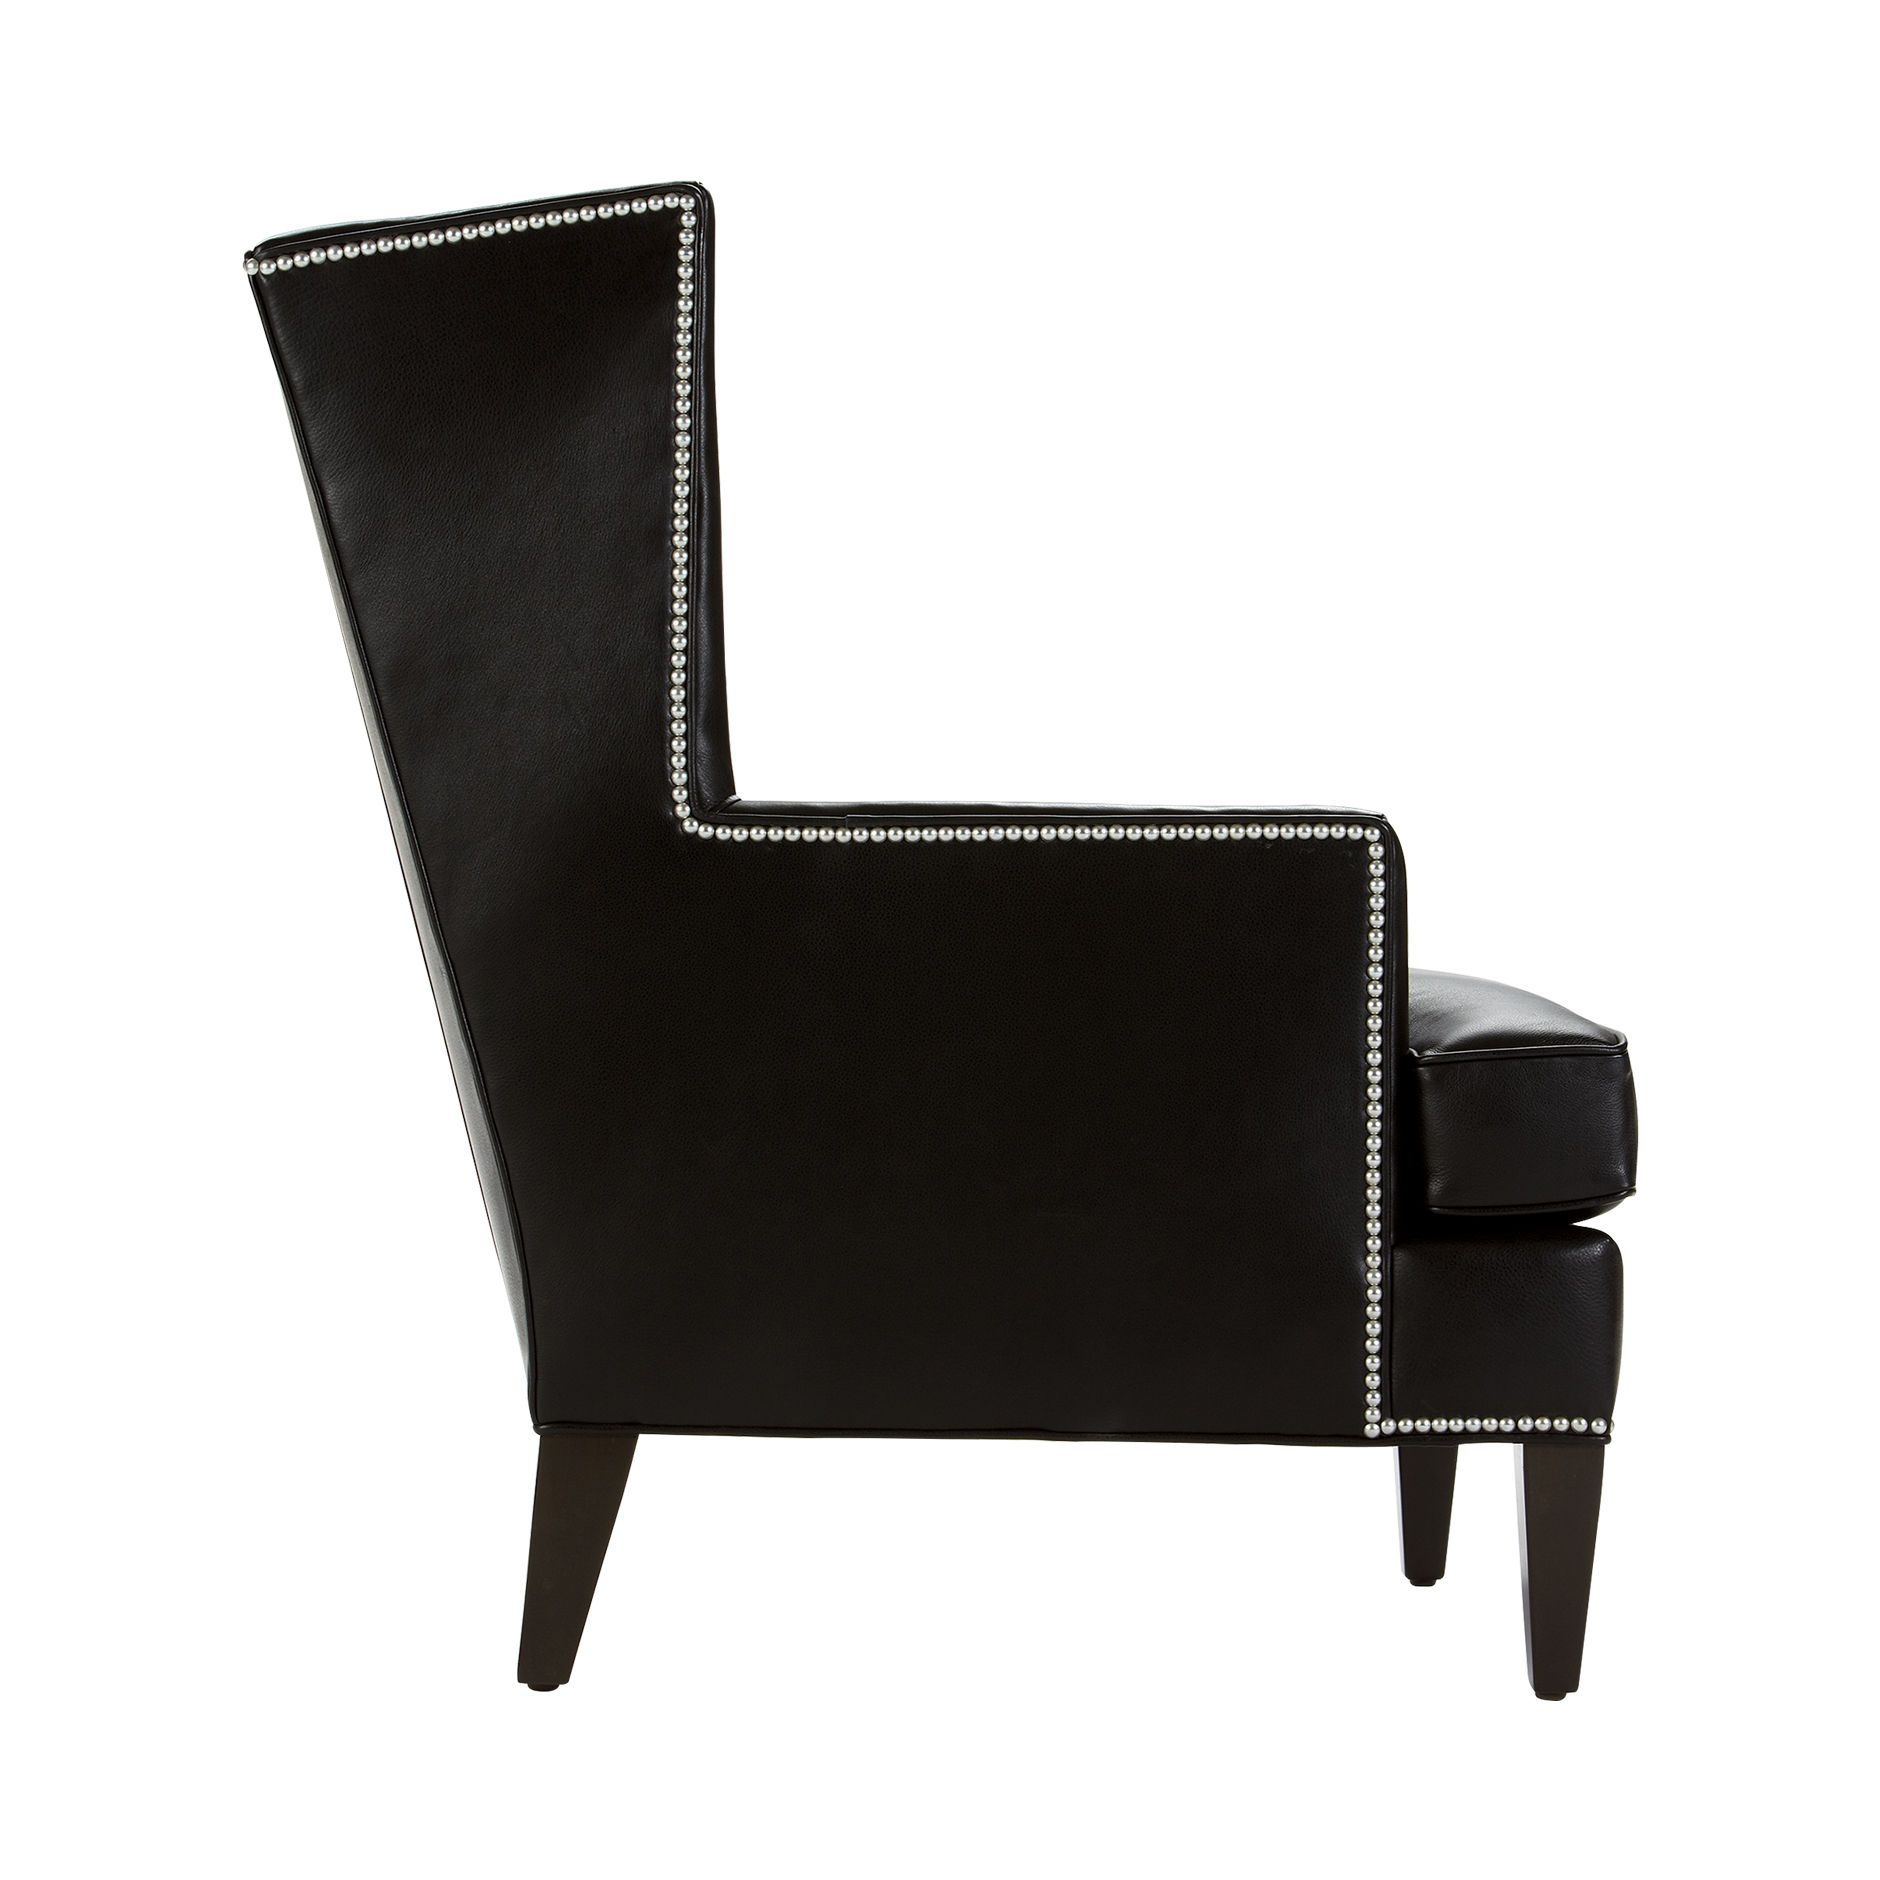 Parker Leather Chair, Turin/ Black - Ethan Allen US | The Parker ...